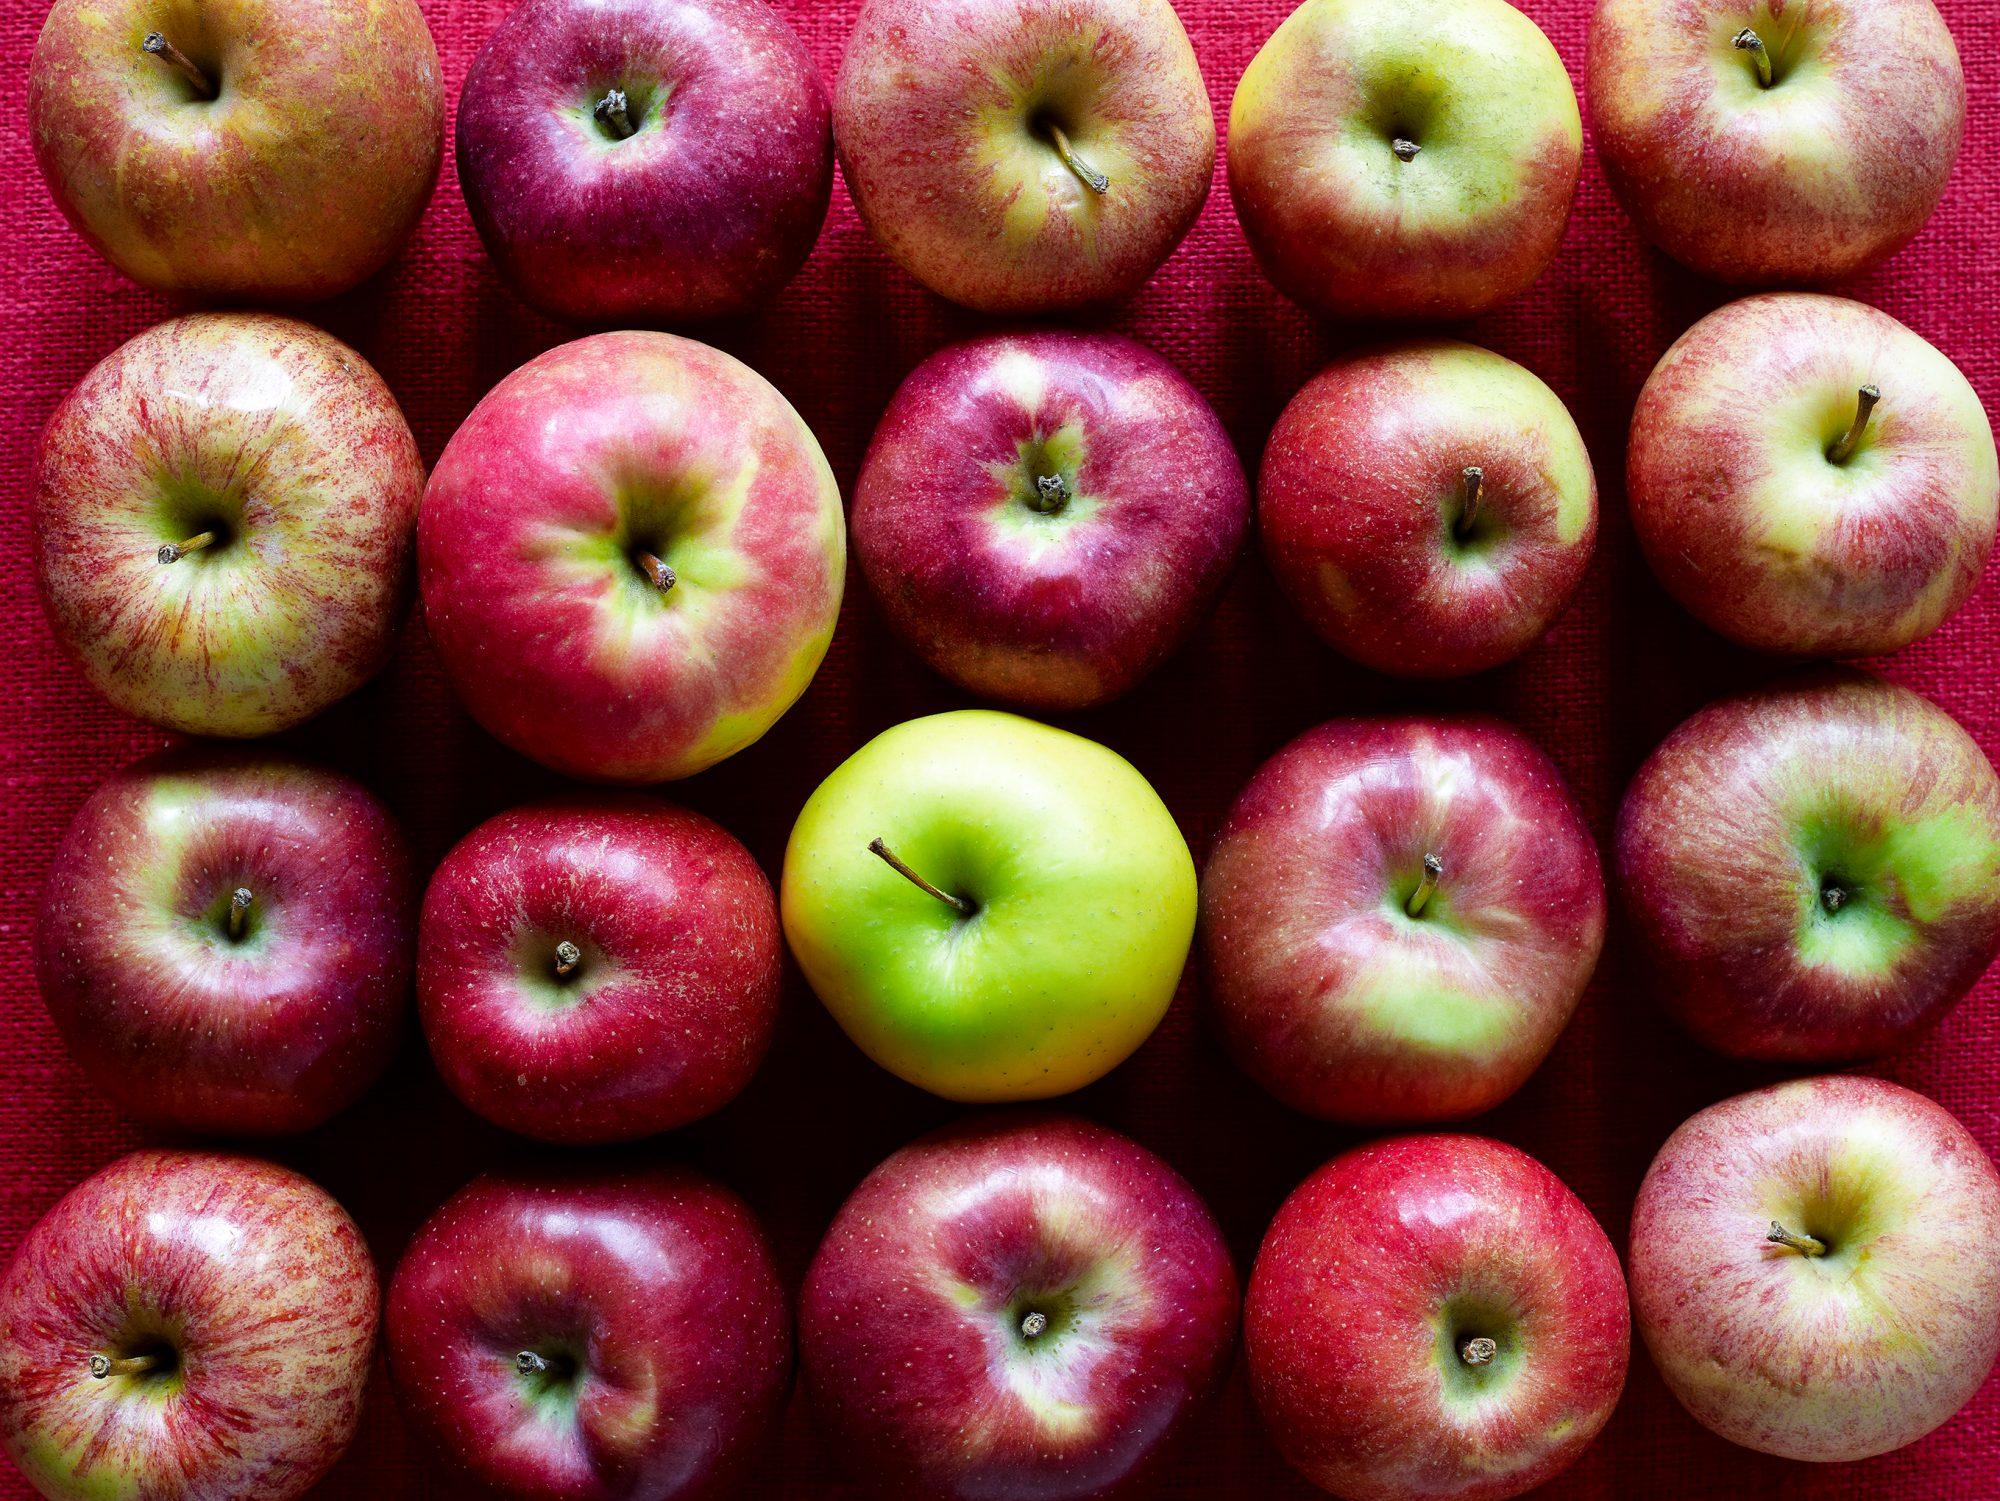 multiple red apples and one green apple